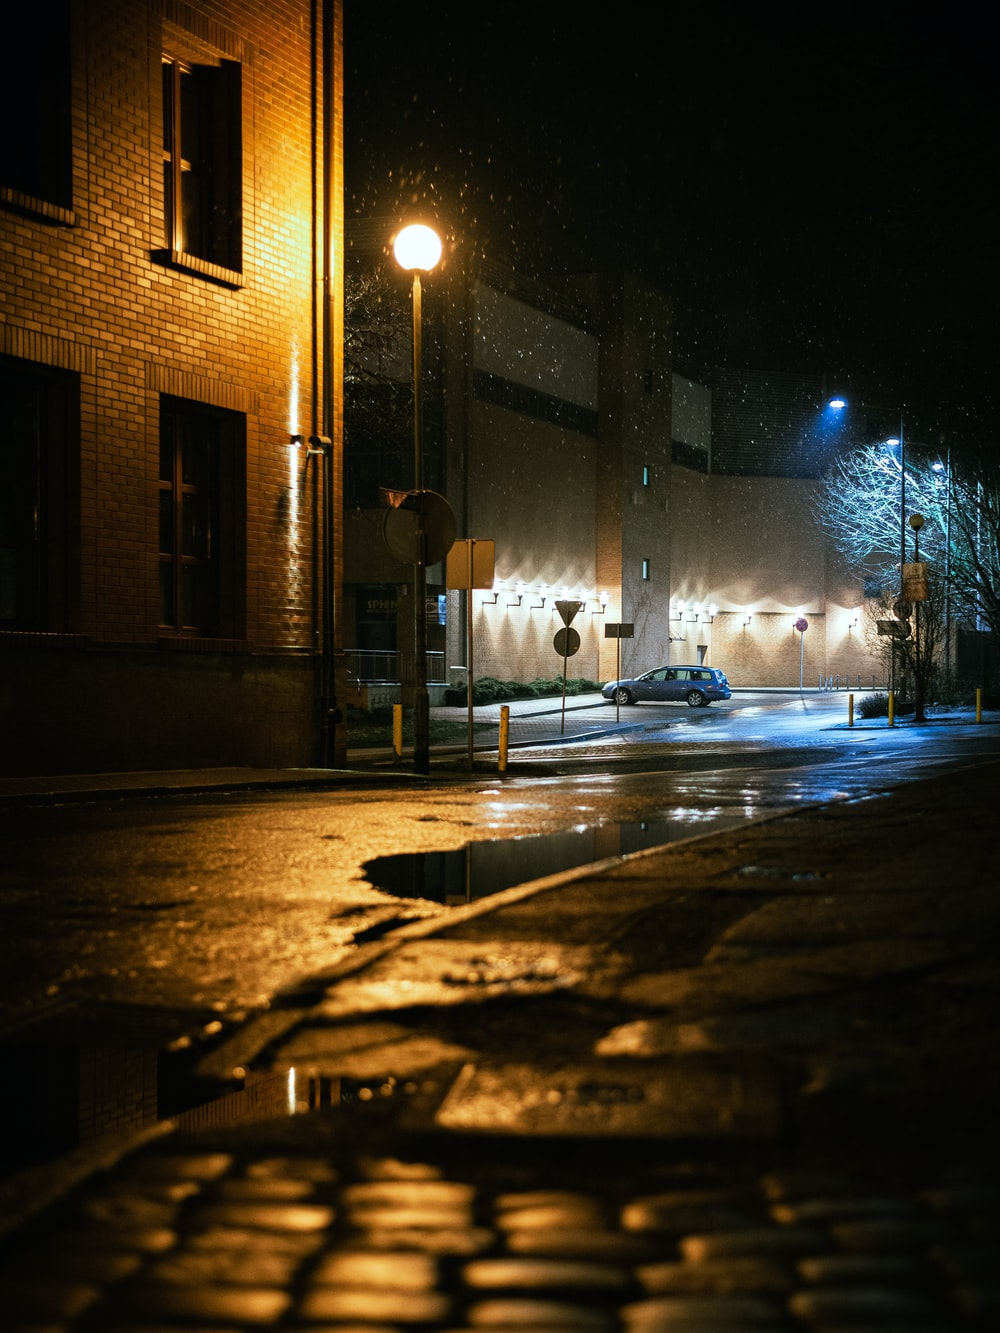 street lights turned on during night time